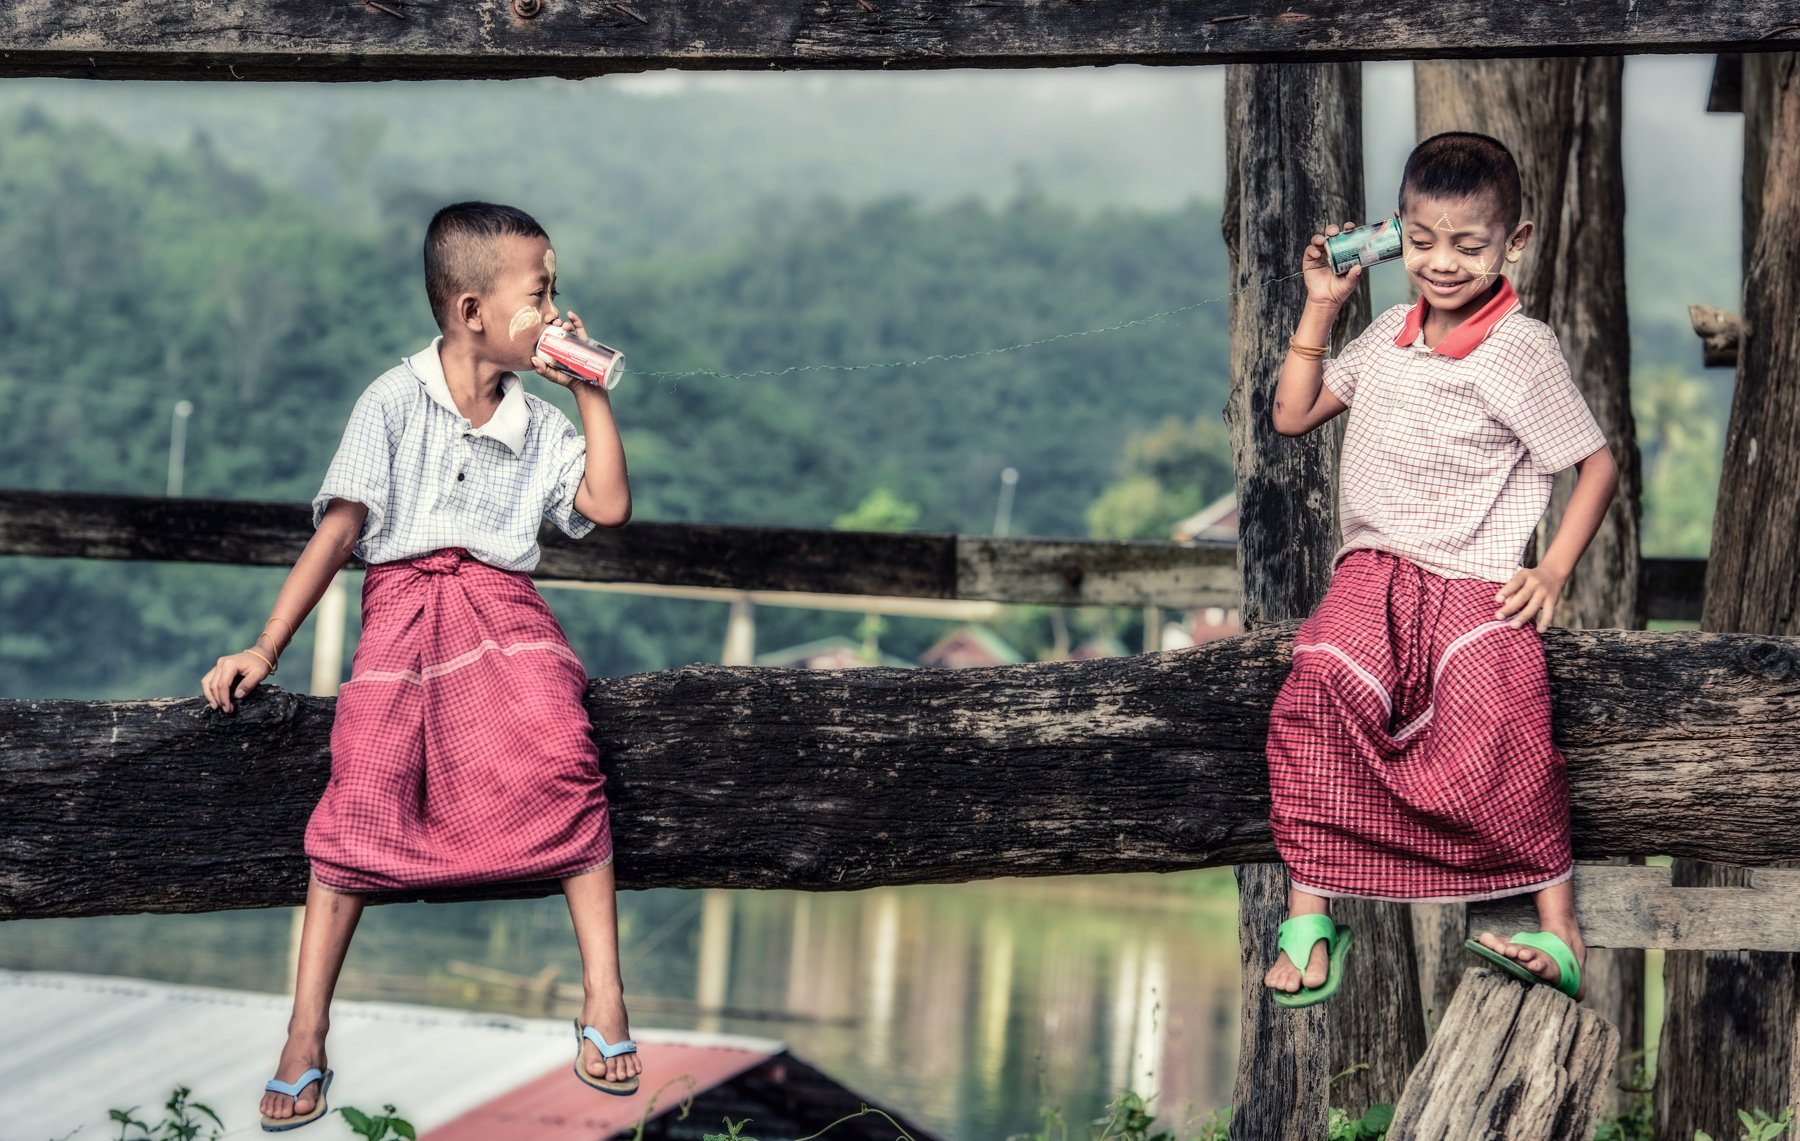 can; kid; tin; phone; child; string; two; toy; young; discussion; clothing; fun; listen; boy; day; horizontal; telephone; discovery; casual; people; technology; childhood; talk; metal; leisure; activity; white; friendship; portrait; cute; smile; connectio, Sasin Tipchai